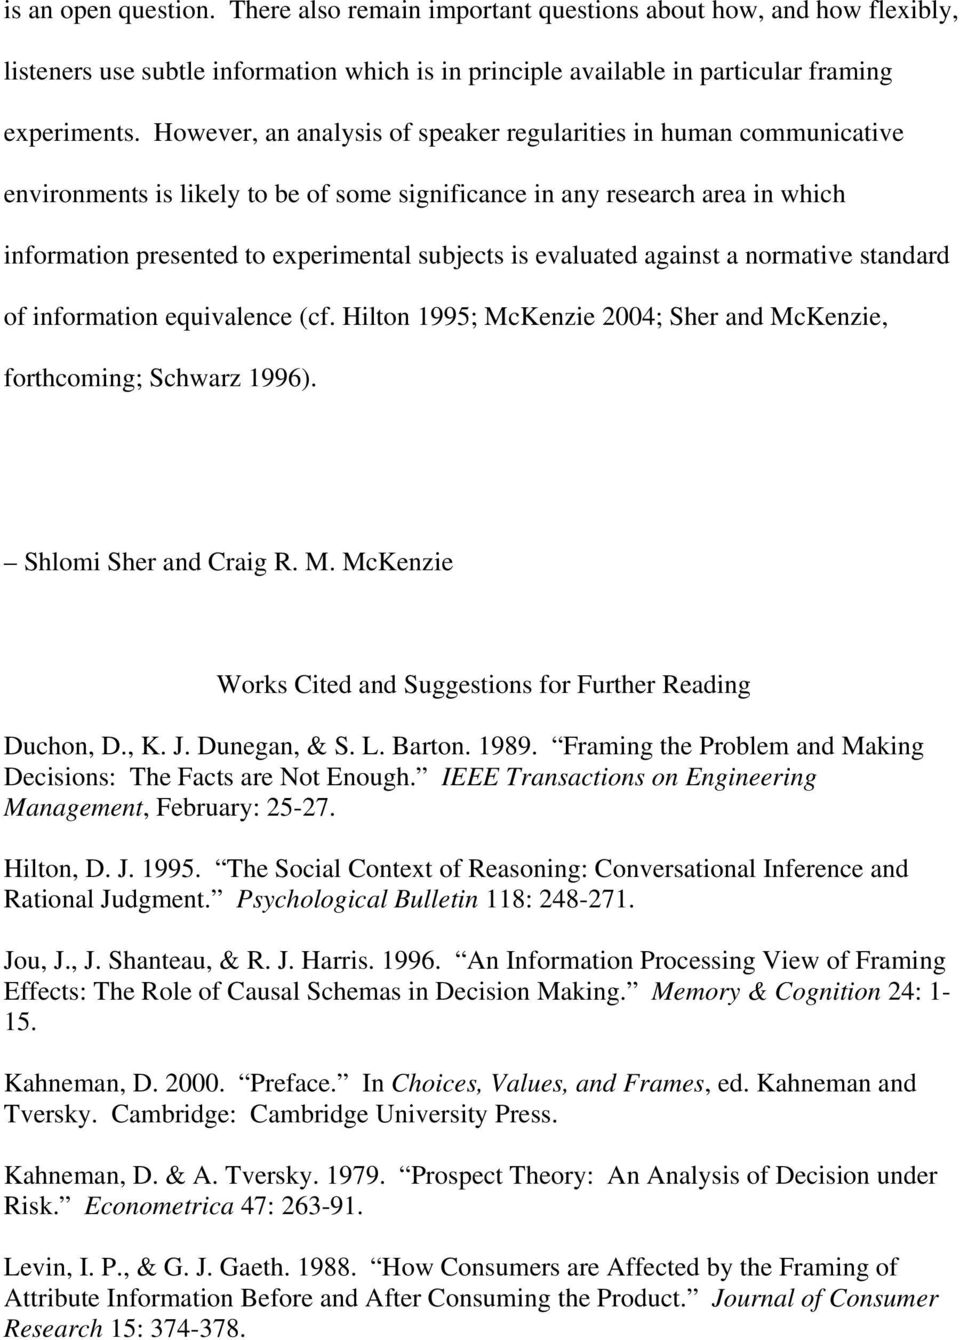 evaluated against a normative standard of information equivalence (cf. Hilton 1995; McKenzie 2004; Sher and McKenzie, forthcoming; Schwarz 1996). Shlomi Sher and Craig R. M. McKenzie Works Cited and Suggestions for Further Reading Duchon, D.